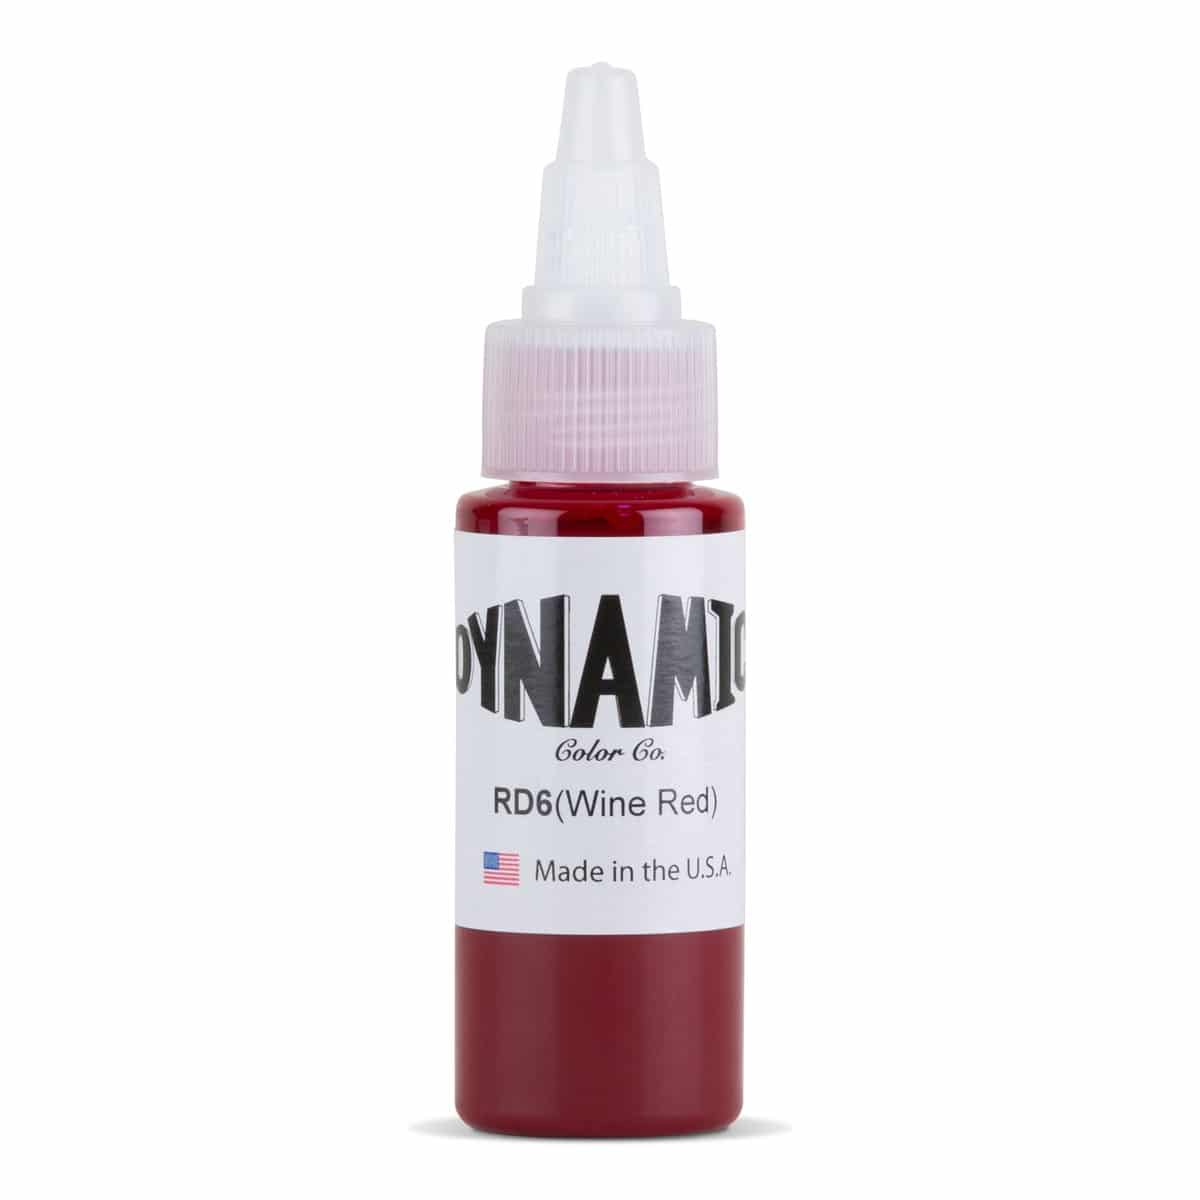 Dynamic Color Tattoo Ink: Red Wine